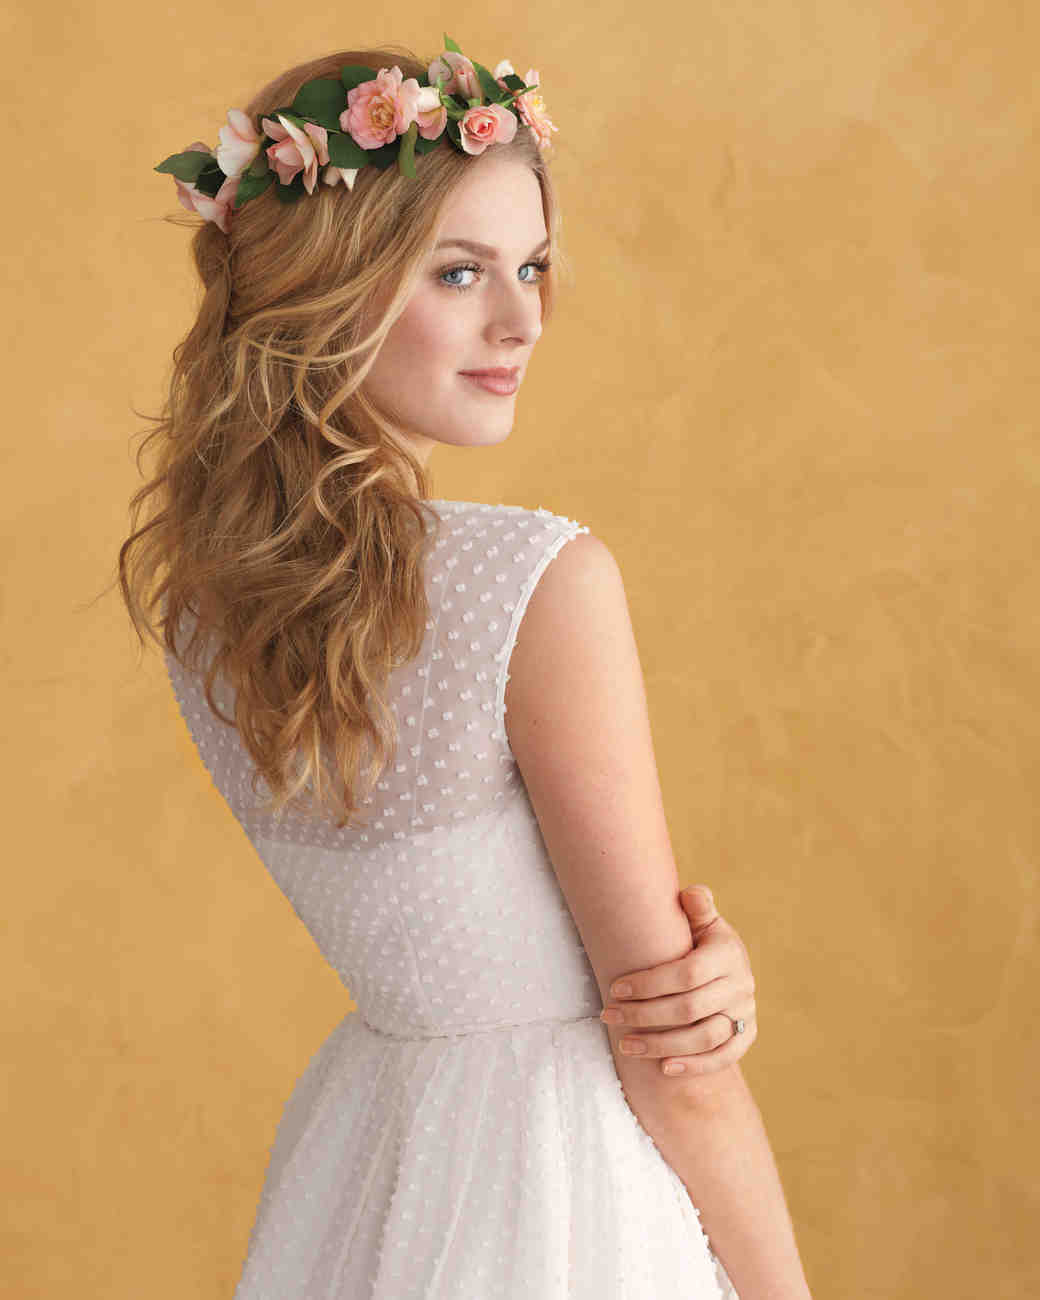 the best hairstyles for every wedding dress neckline | martha